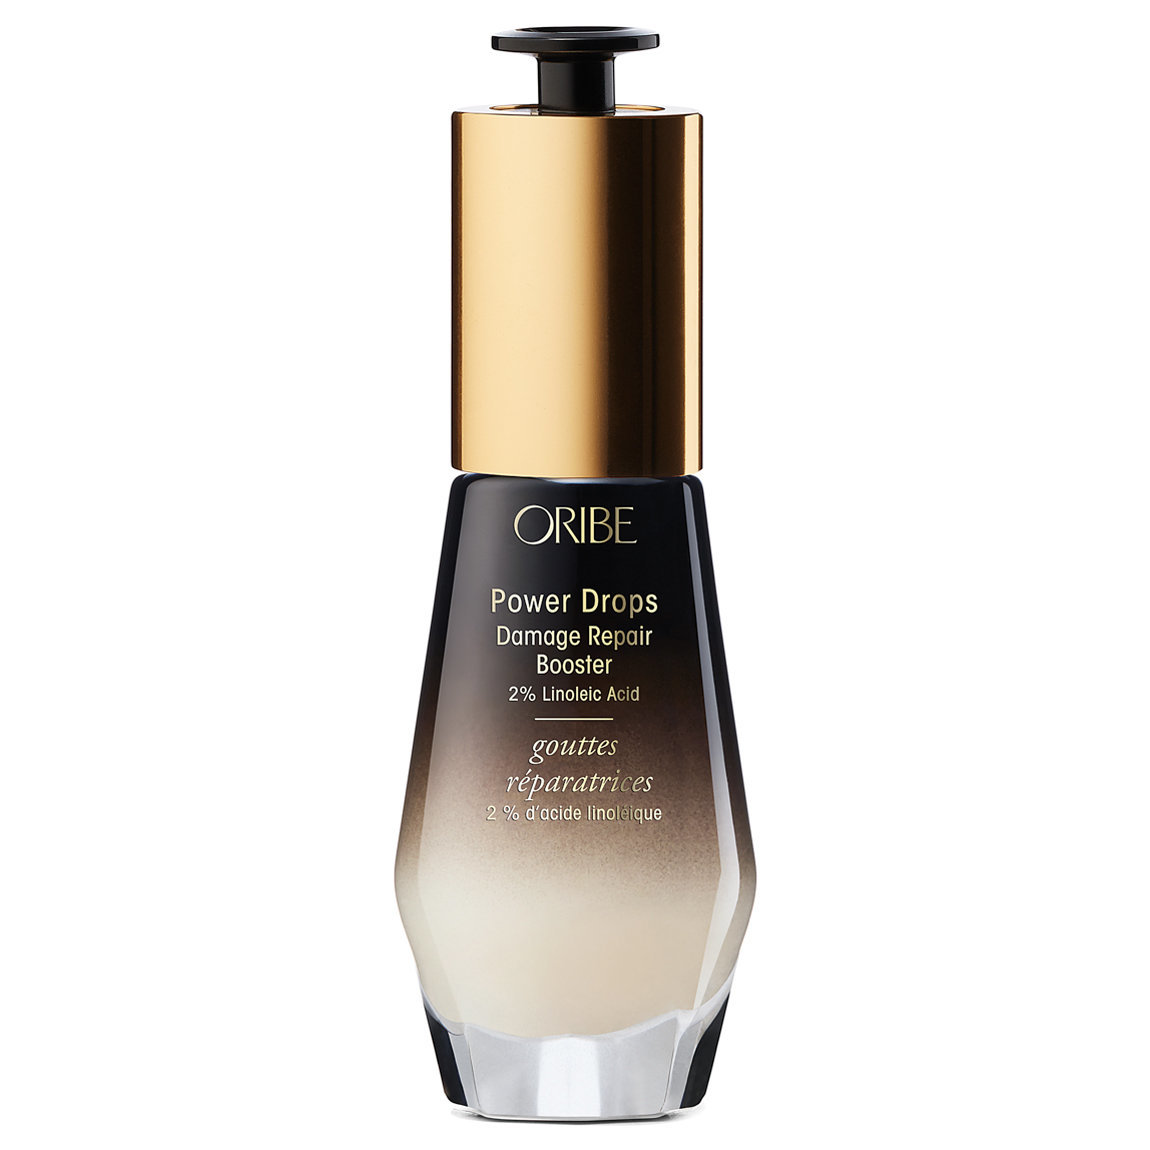 Oribe Power Drops Damage Repair Booster alternative view 1 - product swatch.